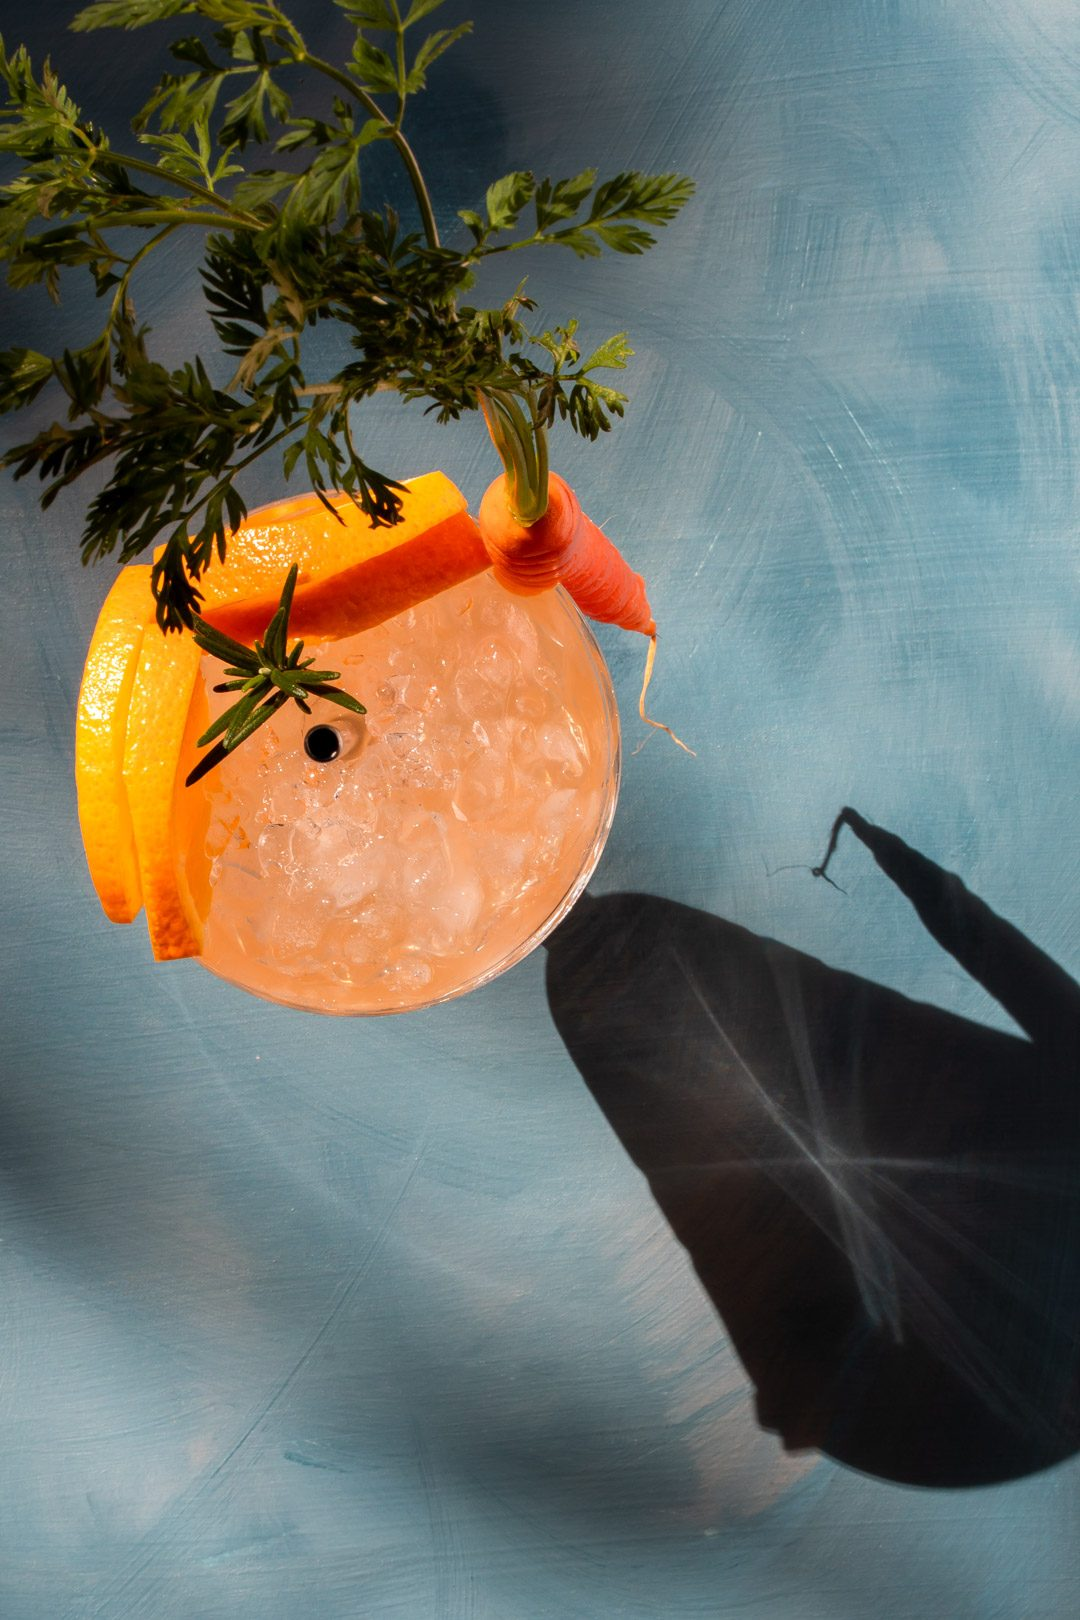 Carrot shrub daisy cocktail from above on blue background with shadows and hard light